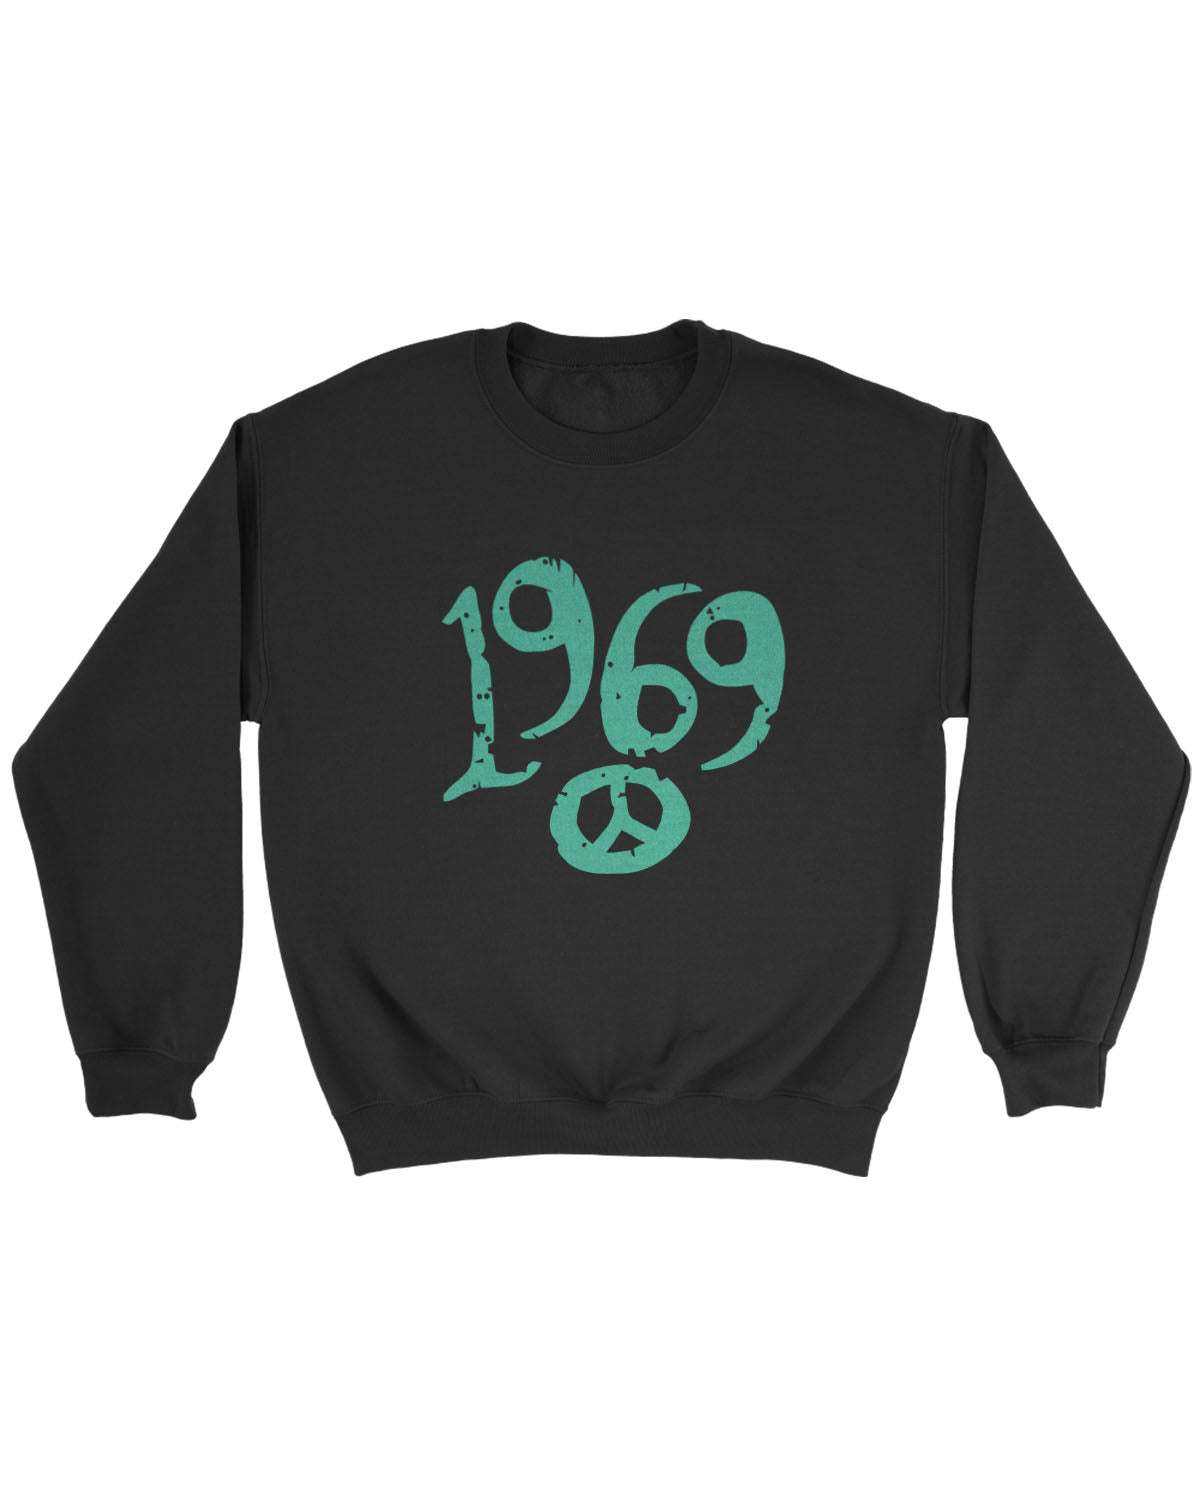 1969 Woodstock Sweatshirt